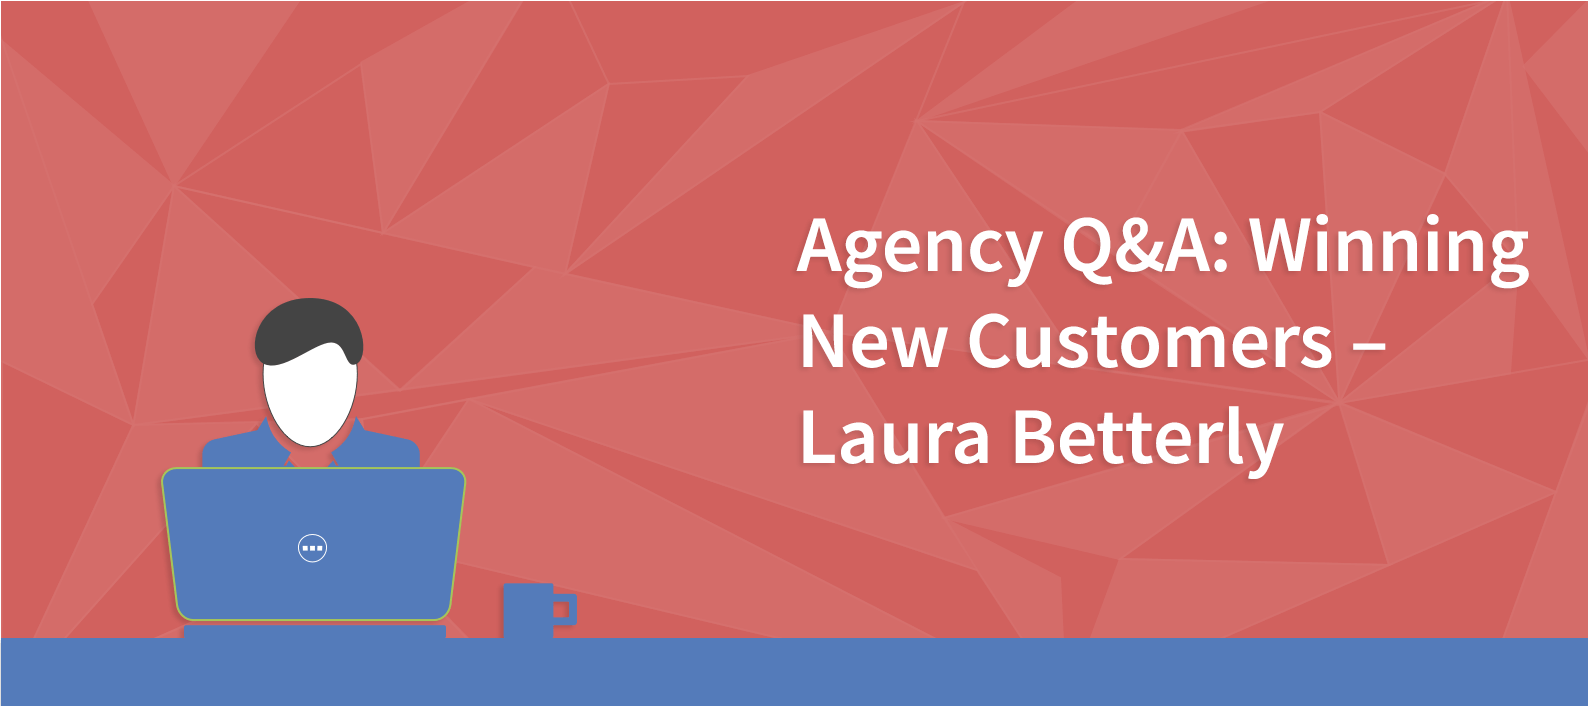 Agency Q&A: Winning New Customers – Laura Betterly